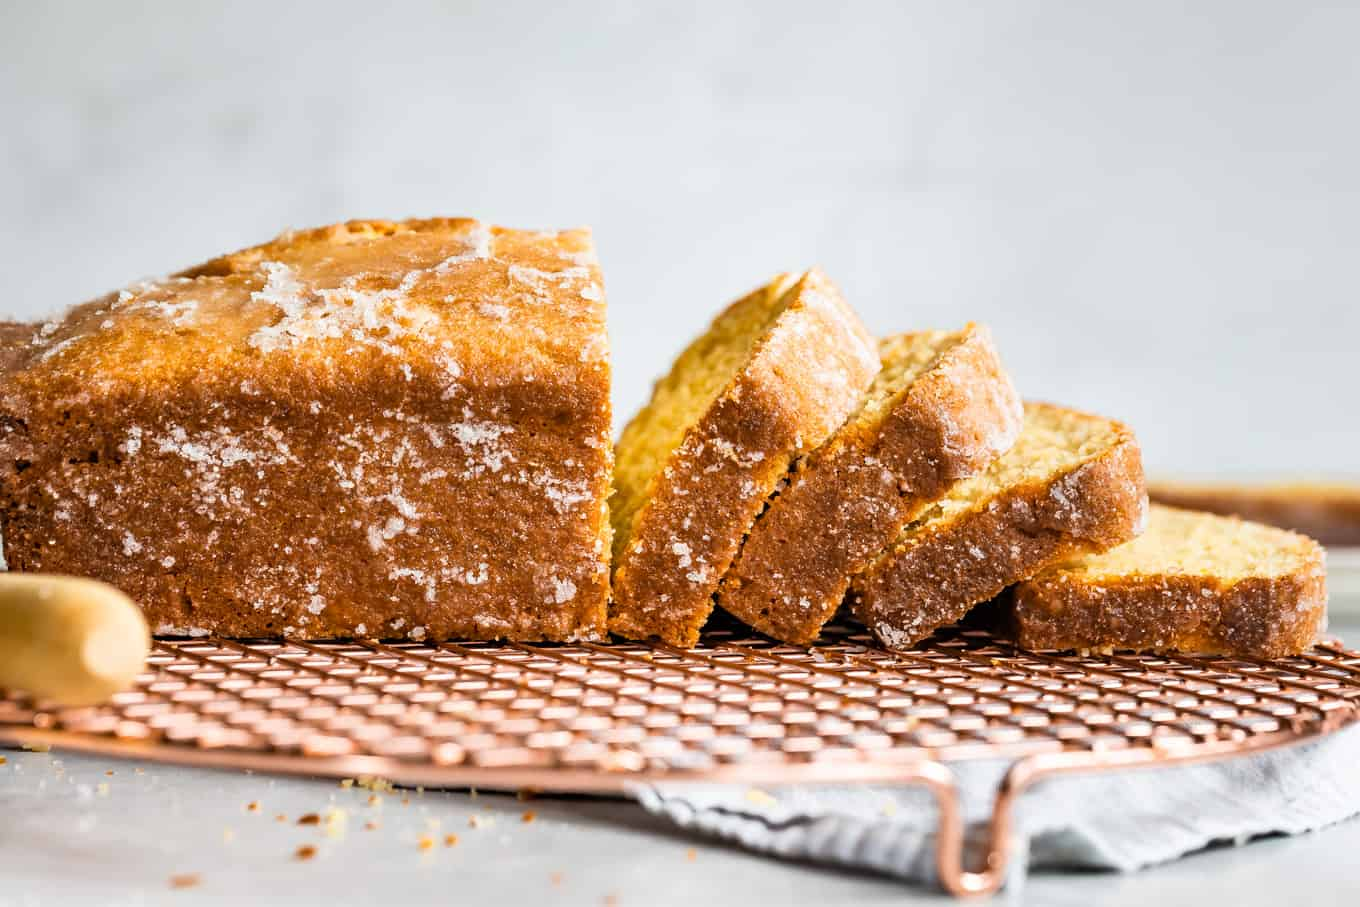 Sliced Gluten-Free Lemon Loaf